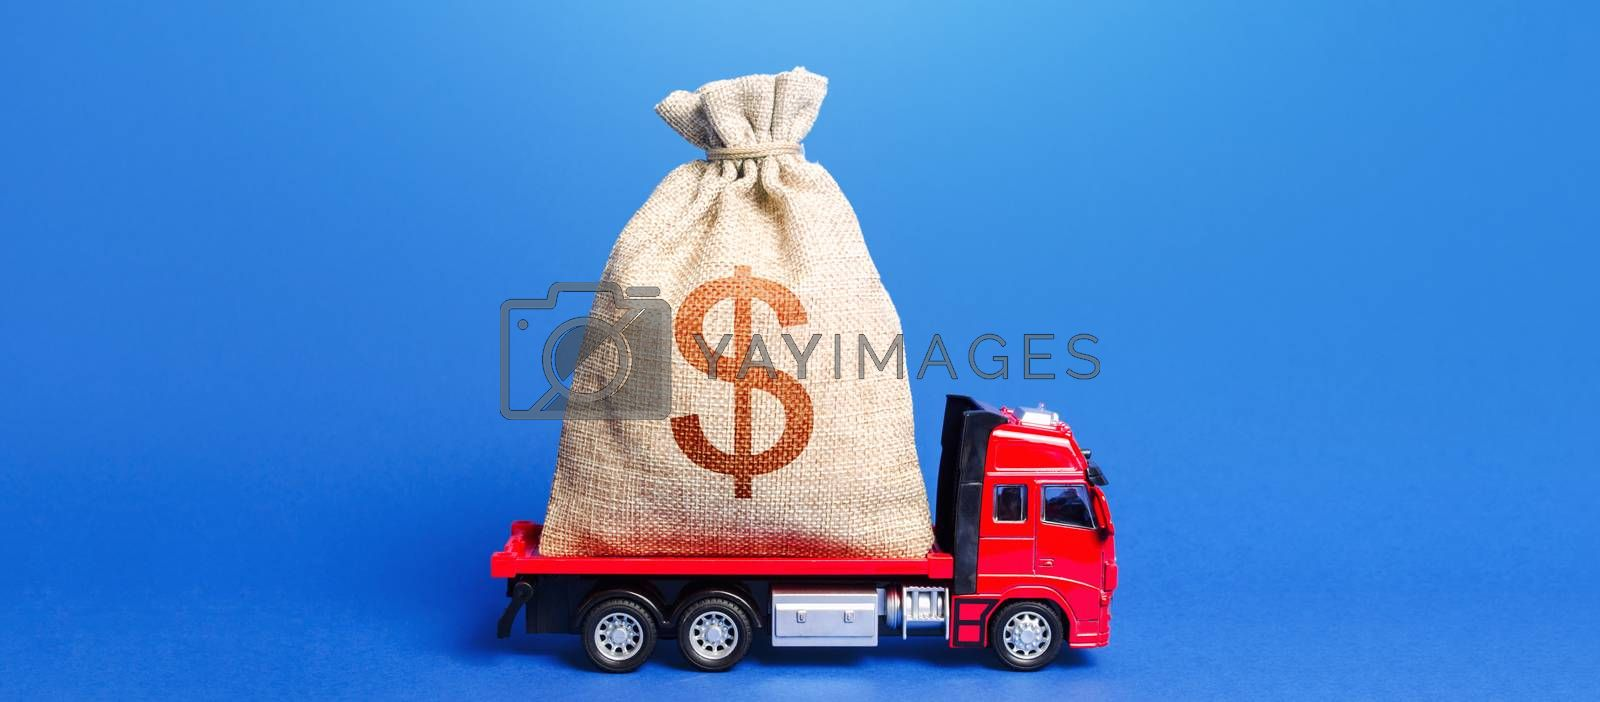 The truck is carrying a huge dollar money bag. Great investment. Attracting large funds to the economy for subsidies, support and cheap soft loans for businesses. Anti-crisis measures of government.